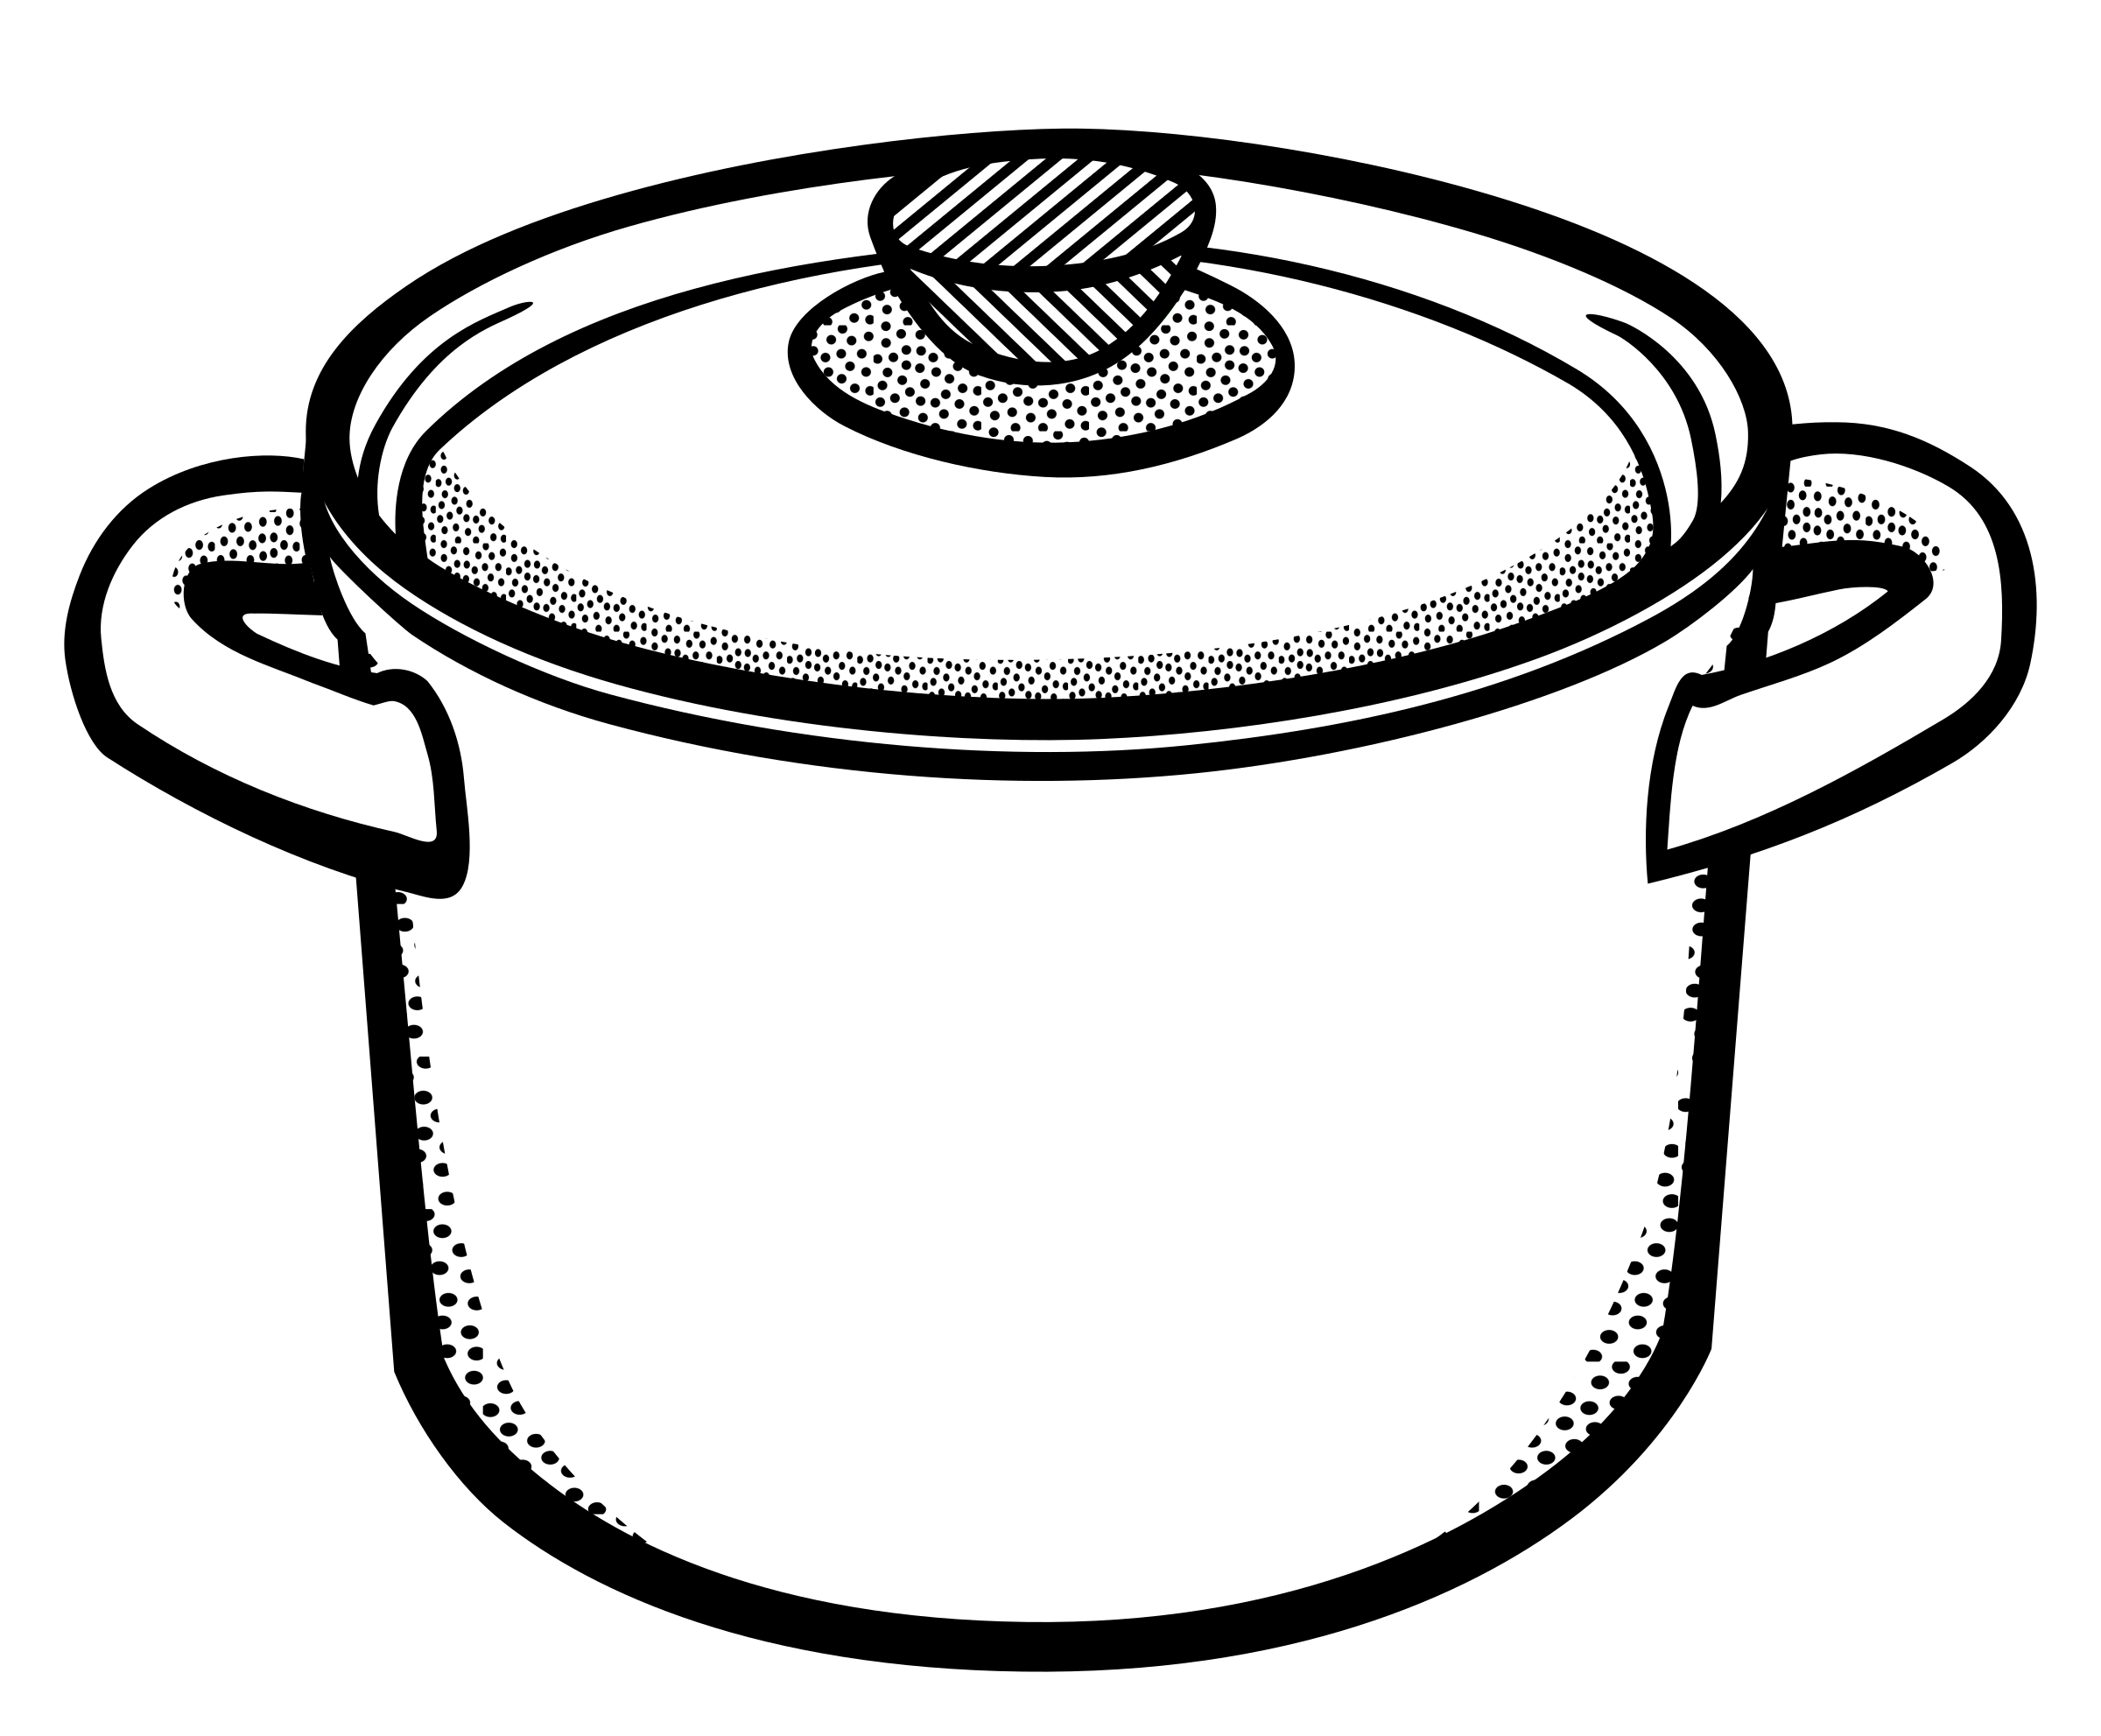 Pot drawing at getdrawings. Cook clipart stove cooking